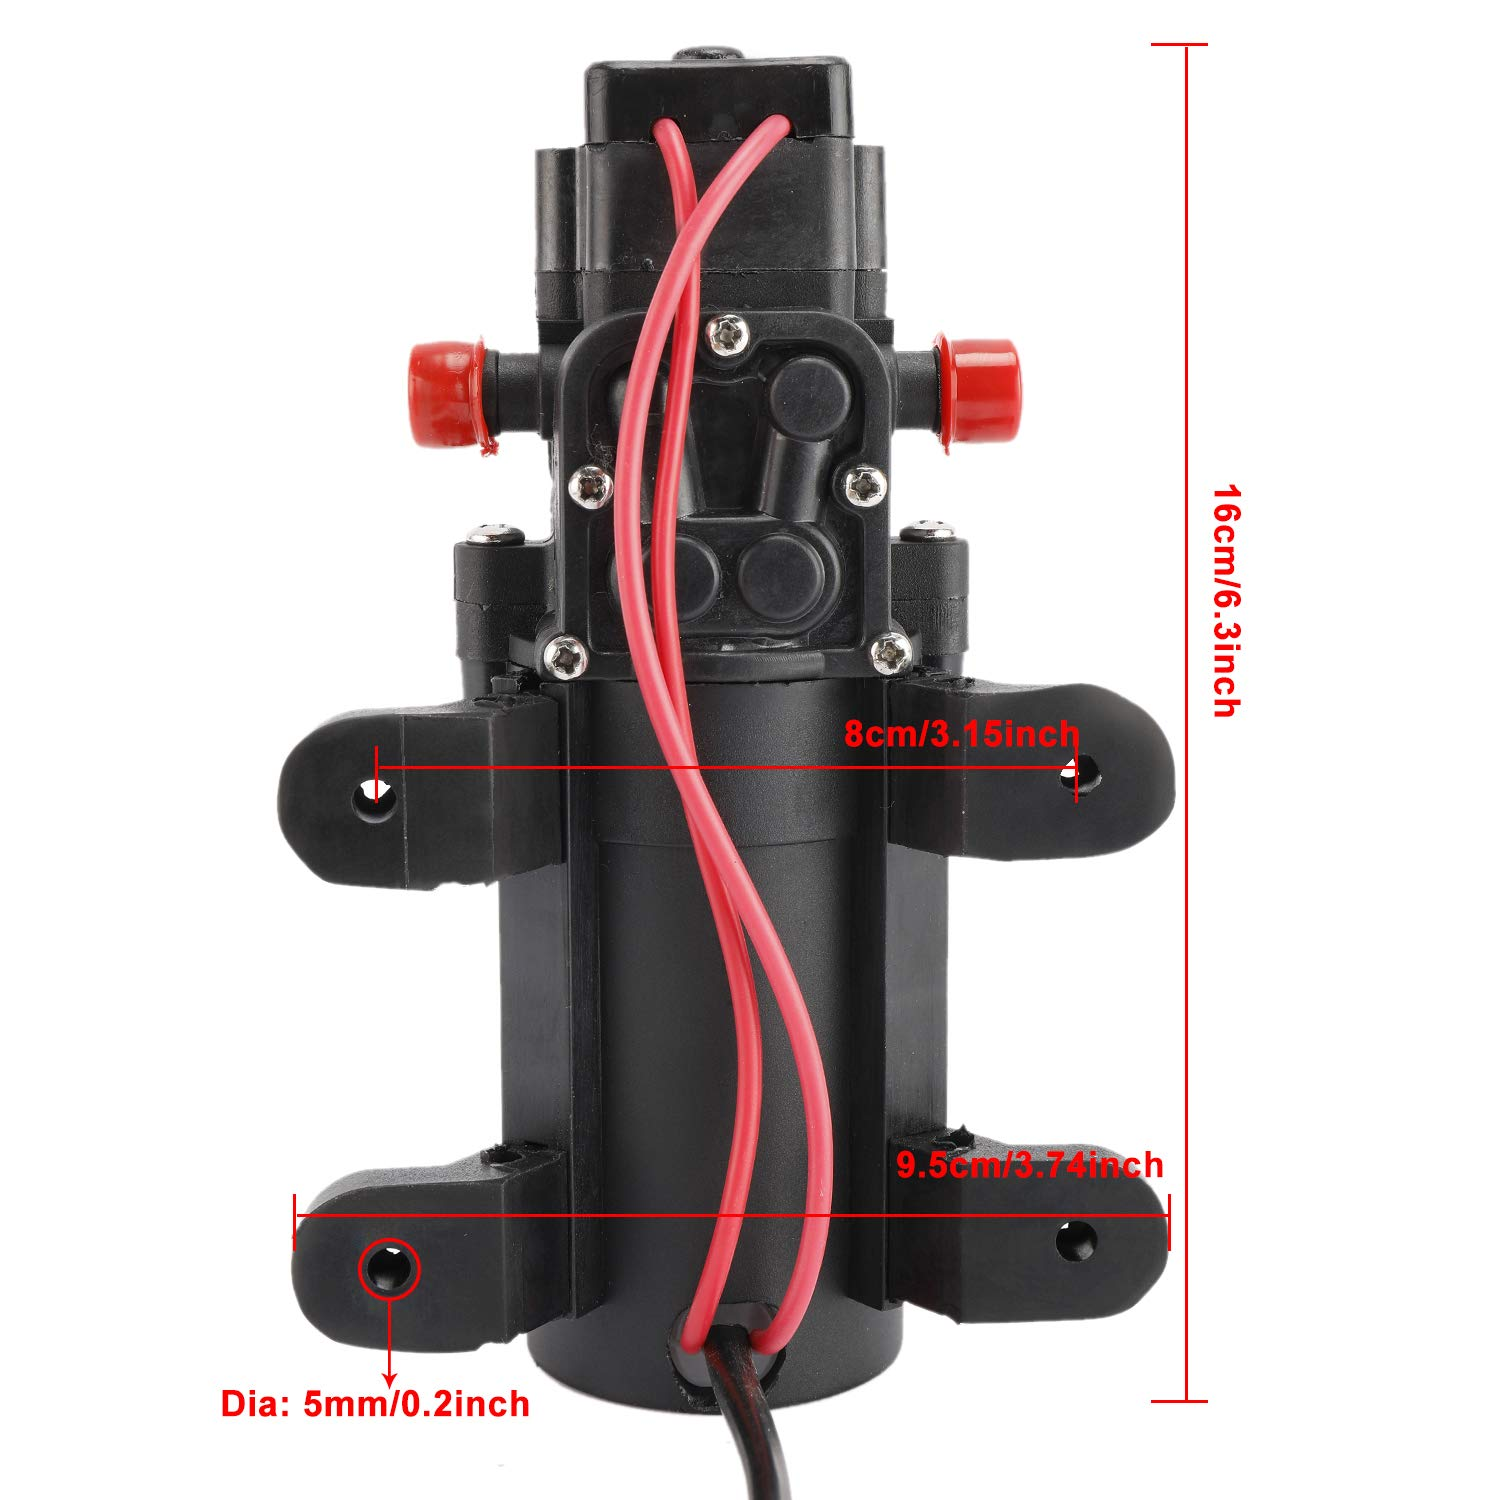 DasMarine Diaphragm Water Pressure Pump with 2 Hose Clamps 12V 1.1 GPM 35 PSI Water Pressure Pump for Caravan//RV//Boat//Marine